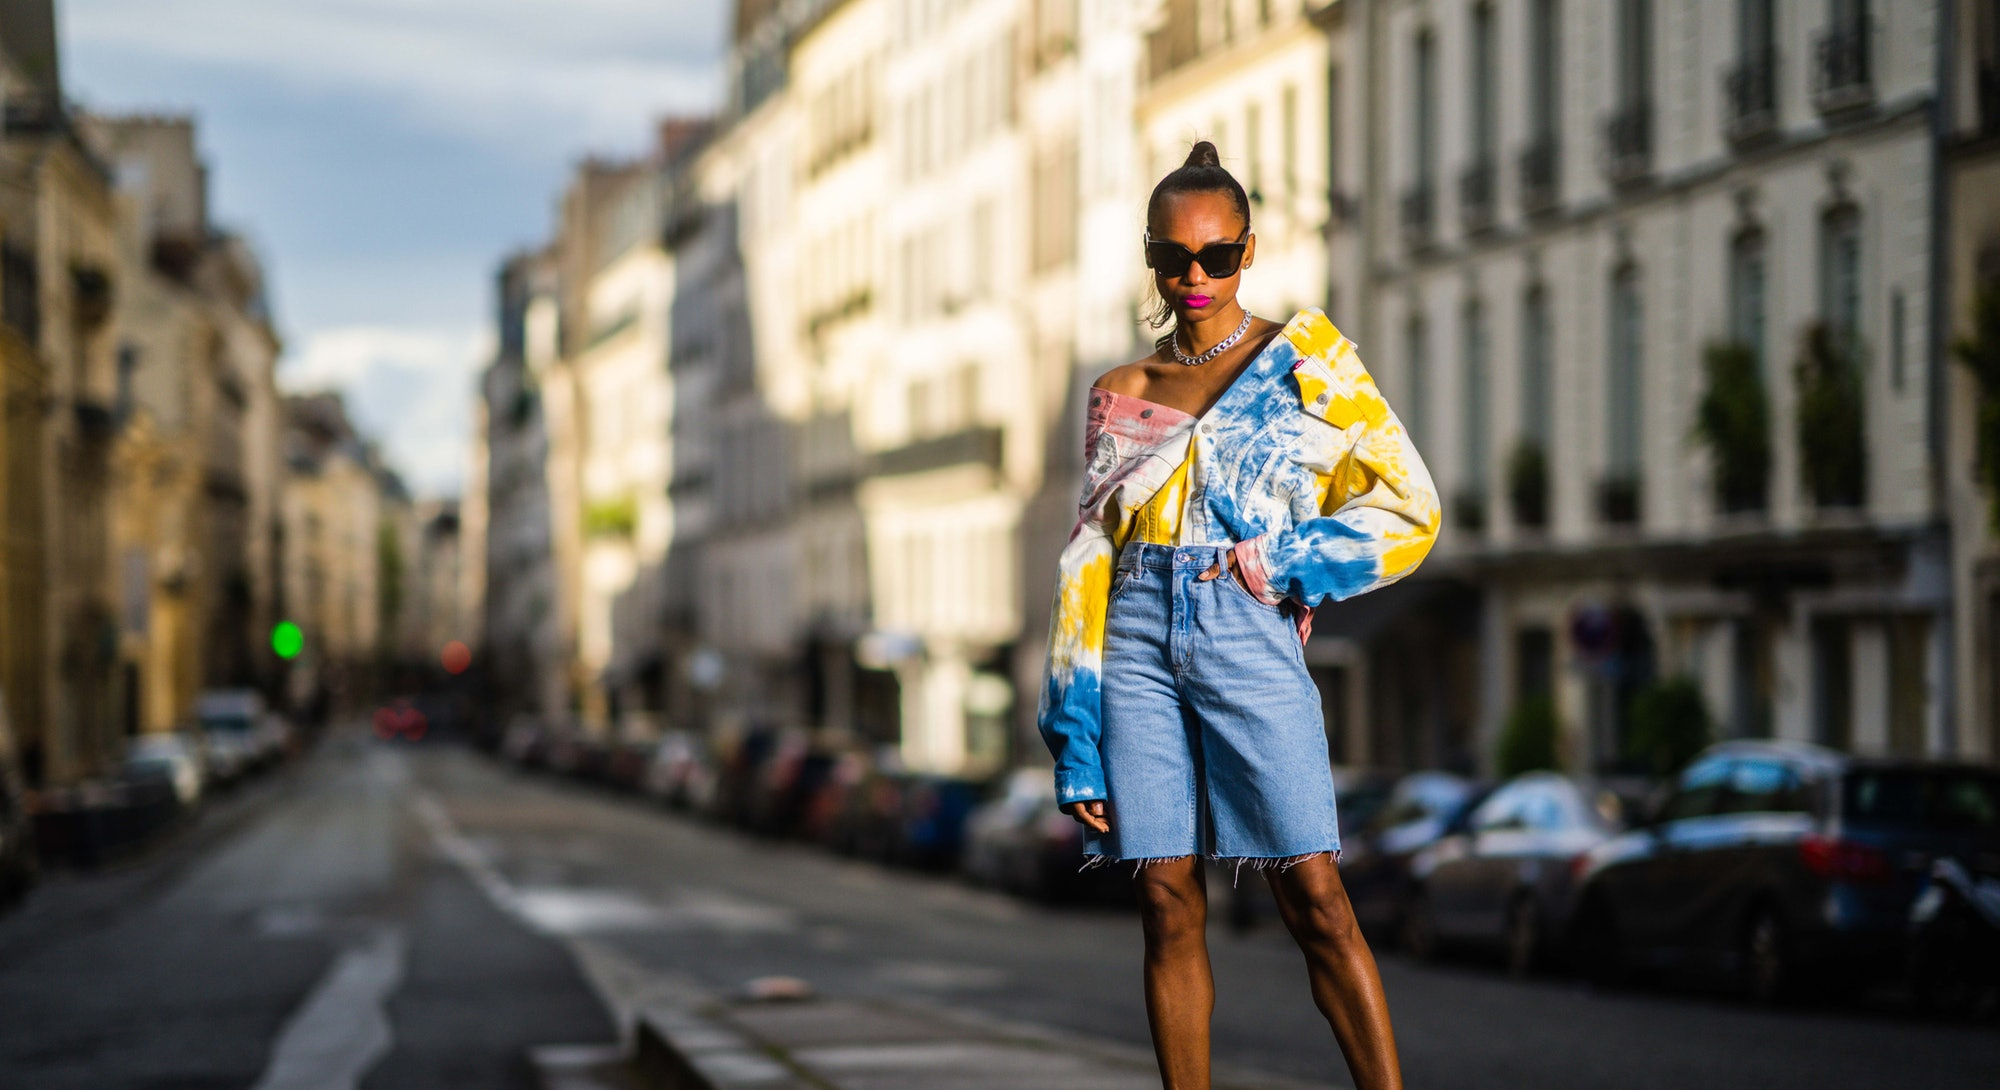 PARIS, FRANCE - MAY 21: Emilie Joseph @in_fashionwetrust wears diamond earrings, a silver chain necklace, black sunglasses, a white yellow blue and orange tie and dye denim jacket by Levis, a blue faded denim jean dad shorts by Mango, pointy pumps/ heels/ stilettos in pastel leather Jimmy Choo shoes, on May 21, 2021 in Paris, France. (Photo by Edward Berthelot/Getty Images)